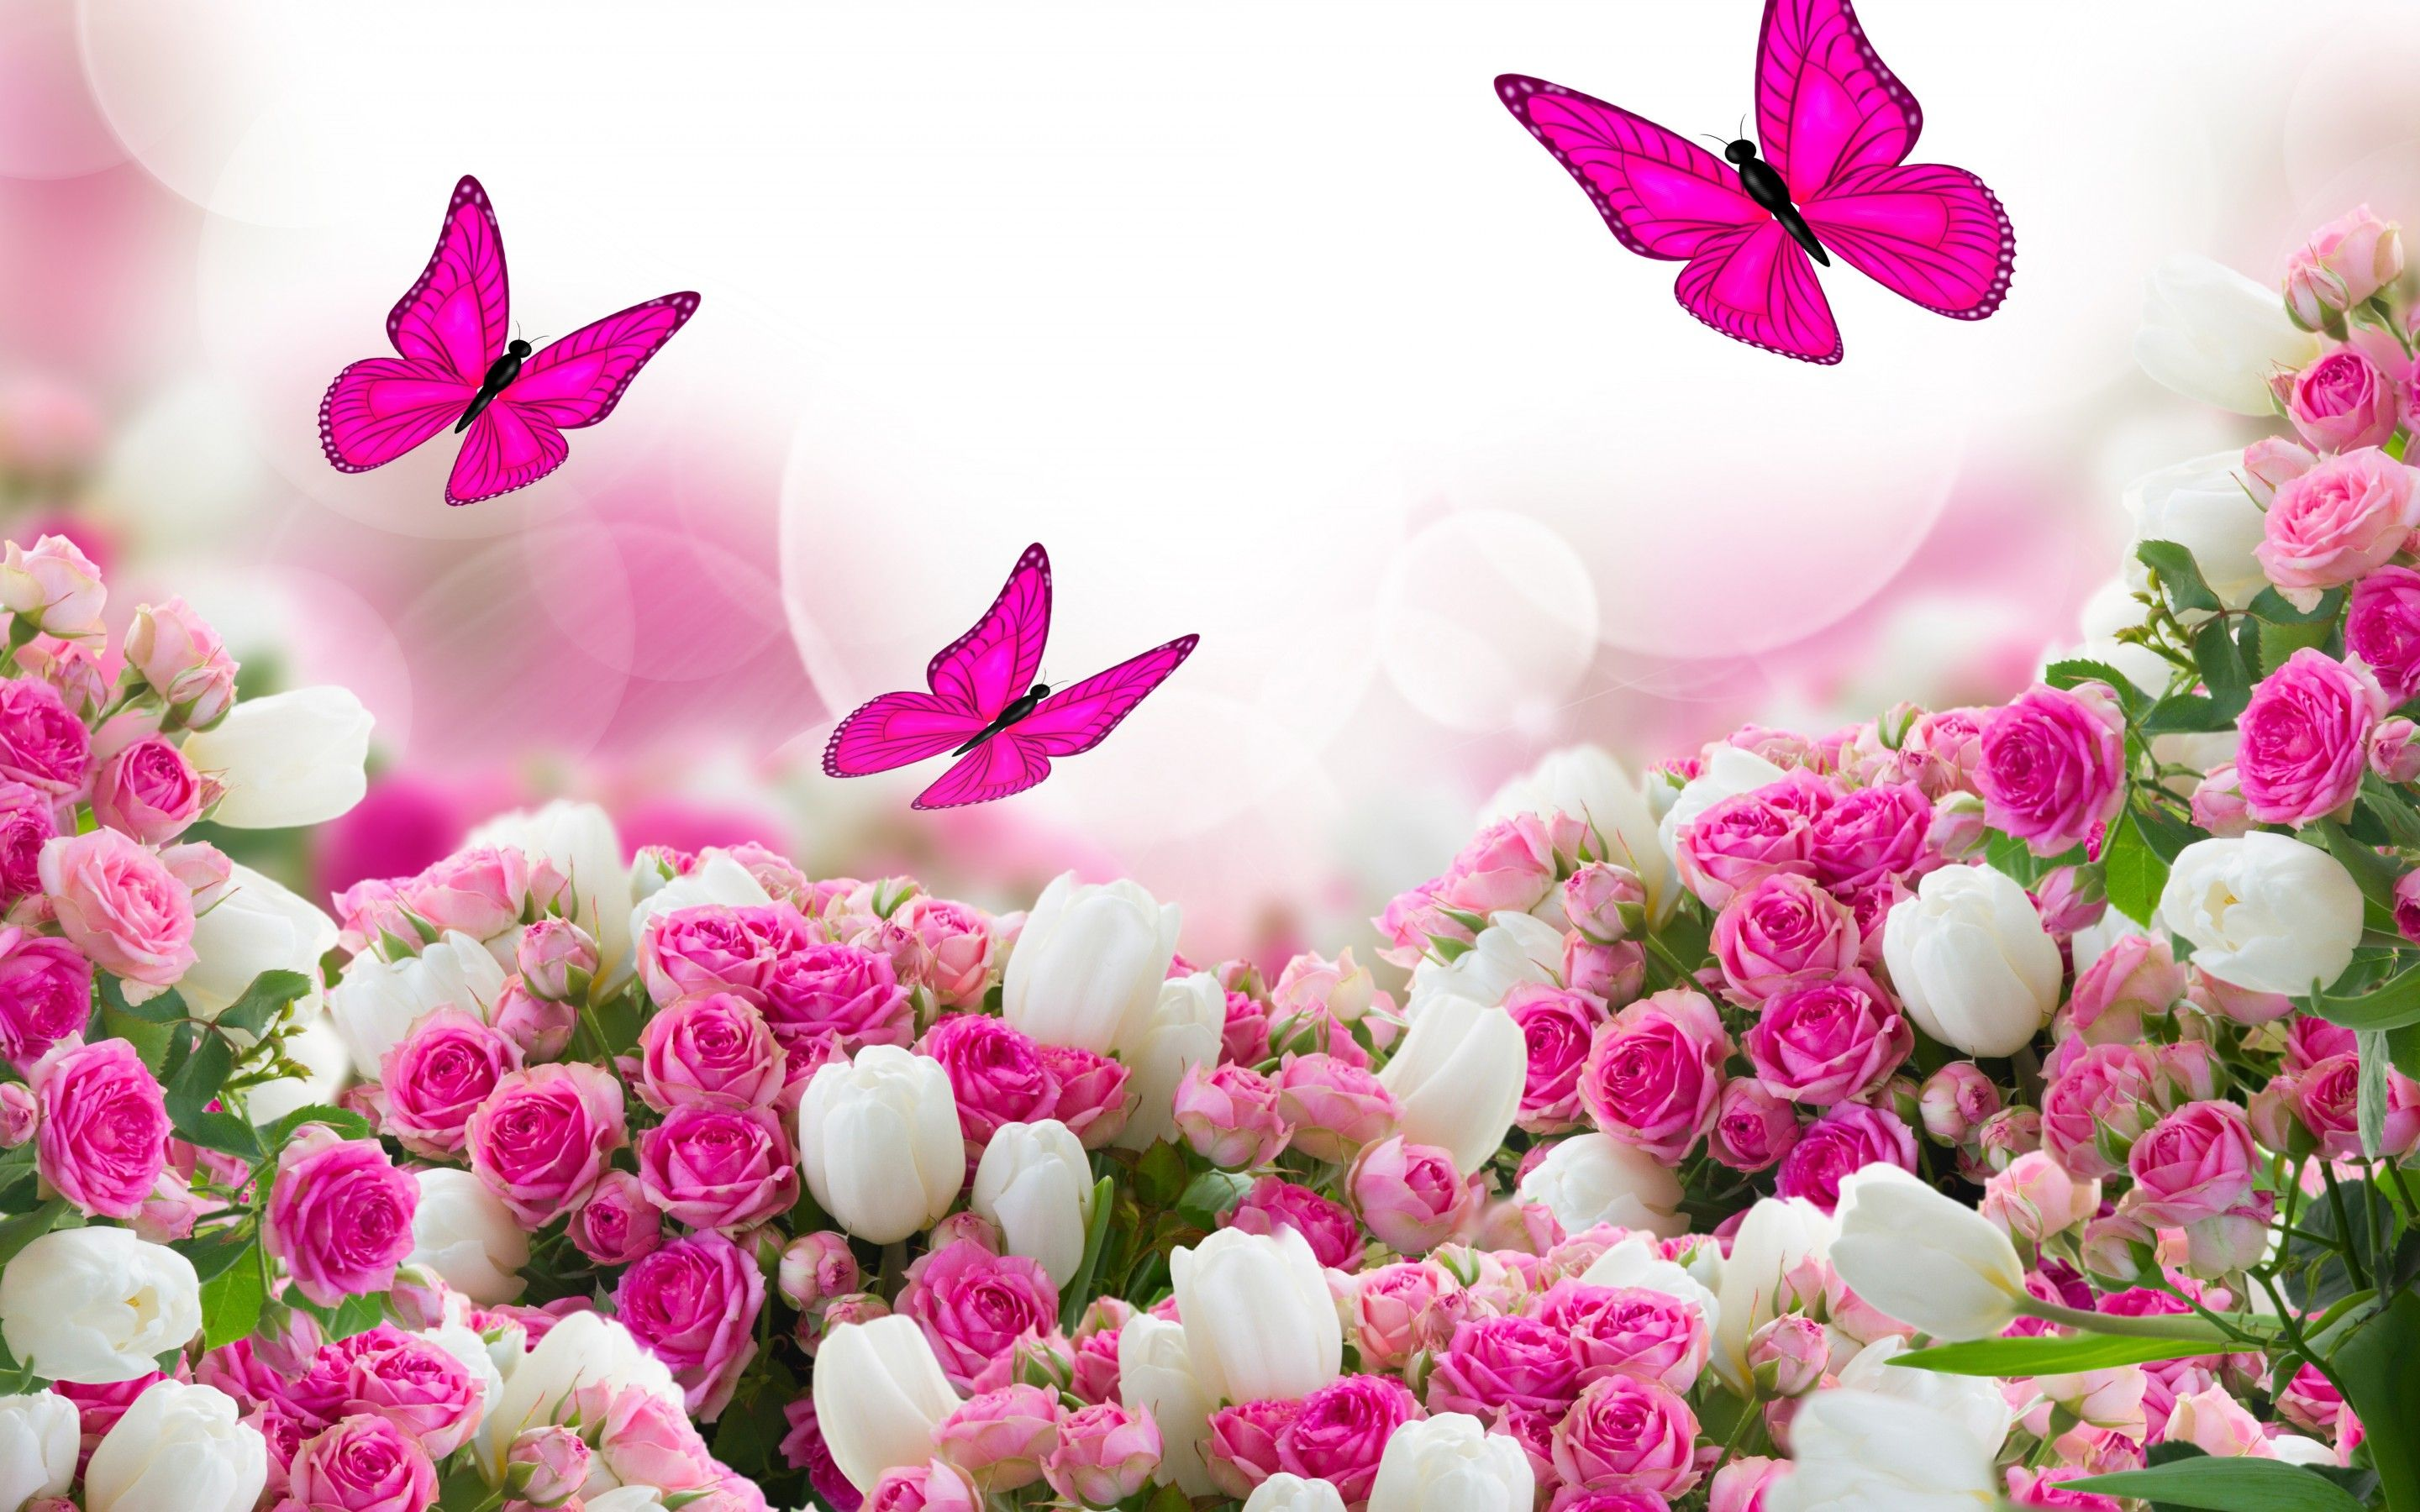 60 Pink Roses and Butterfly Wallpapers   Download at WallpaperBro 2880x1800